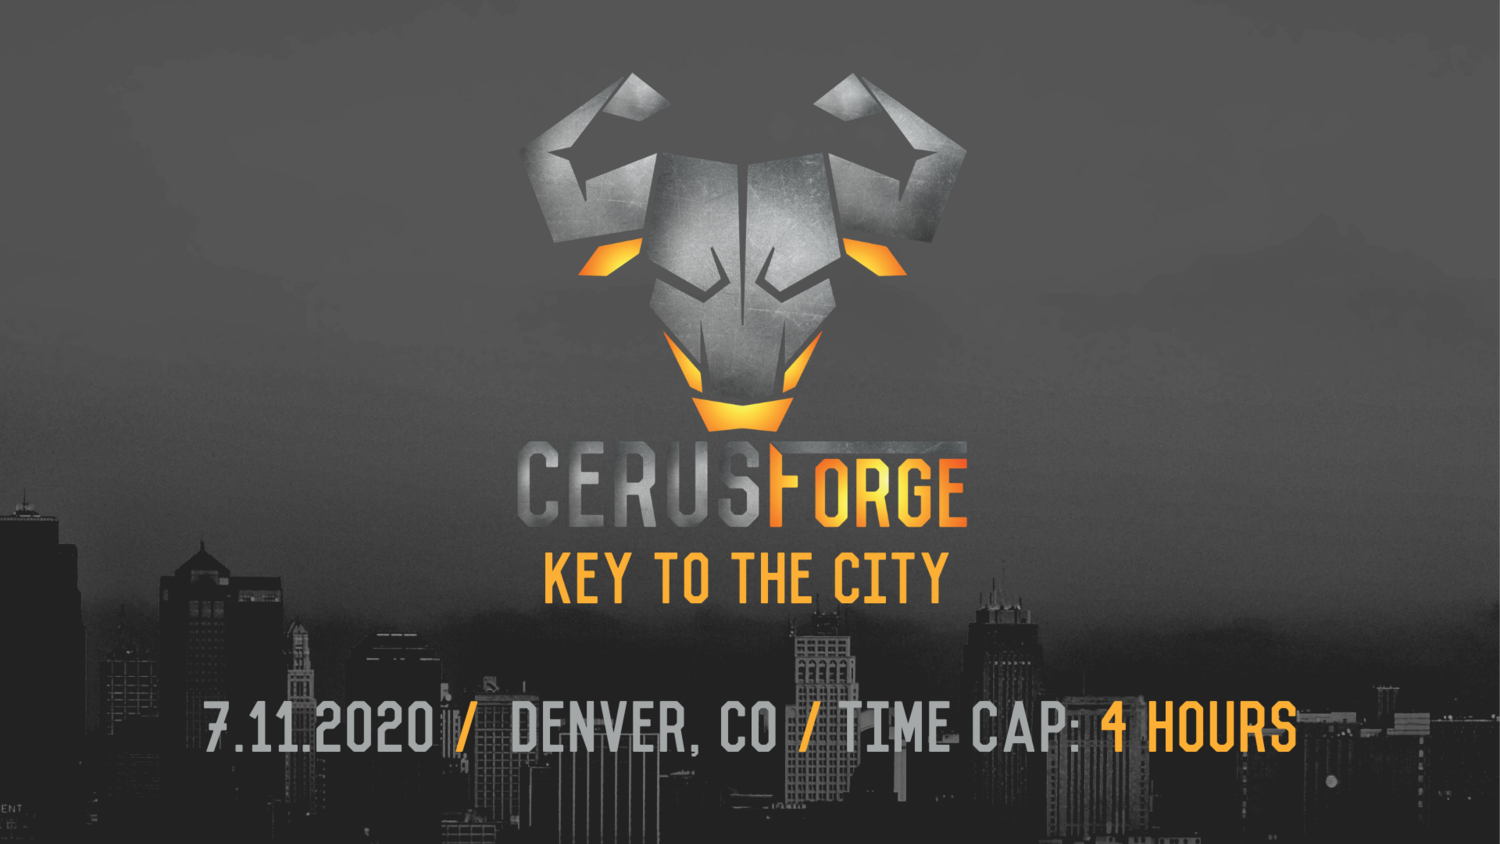 CerusForge: Key to the City 7.11.2020